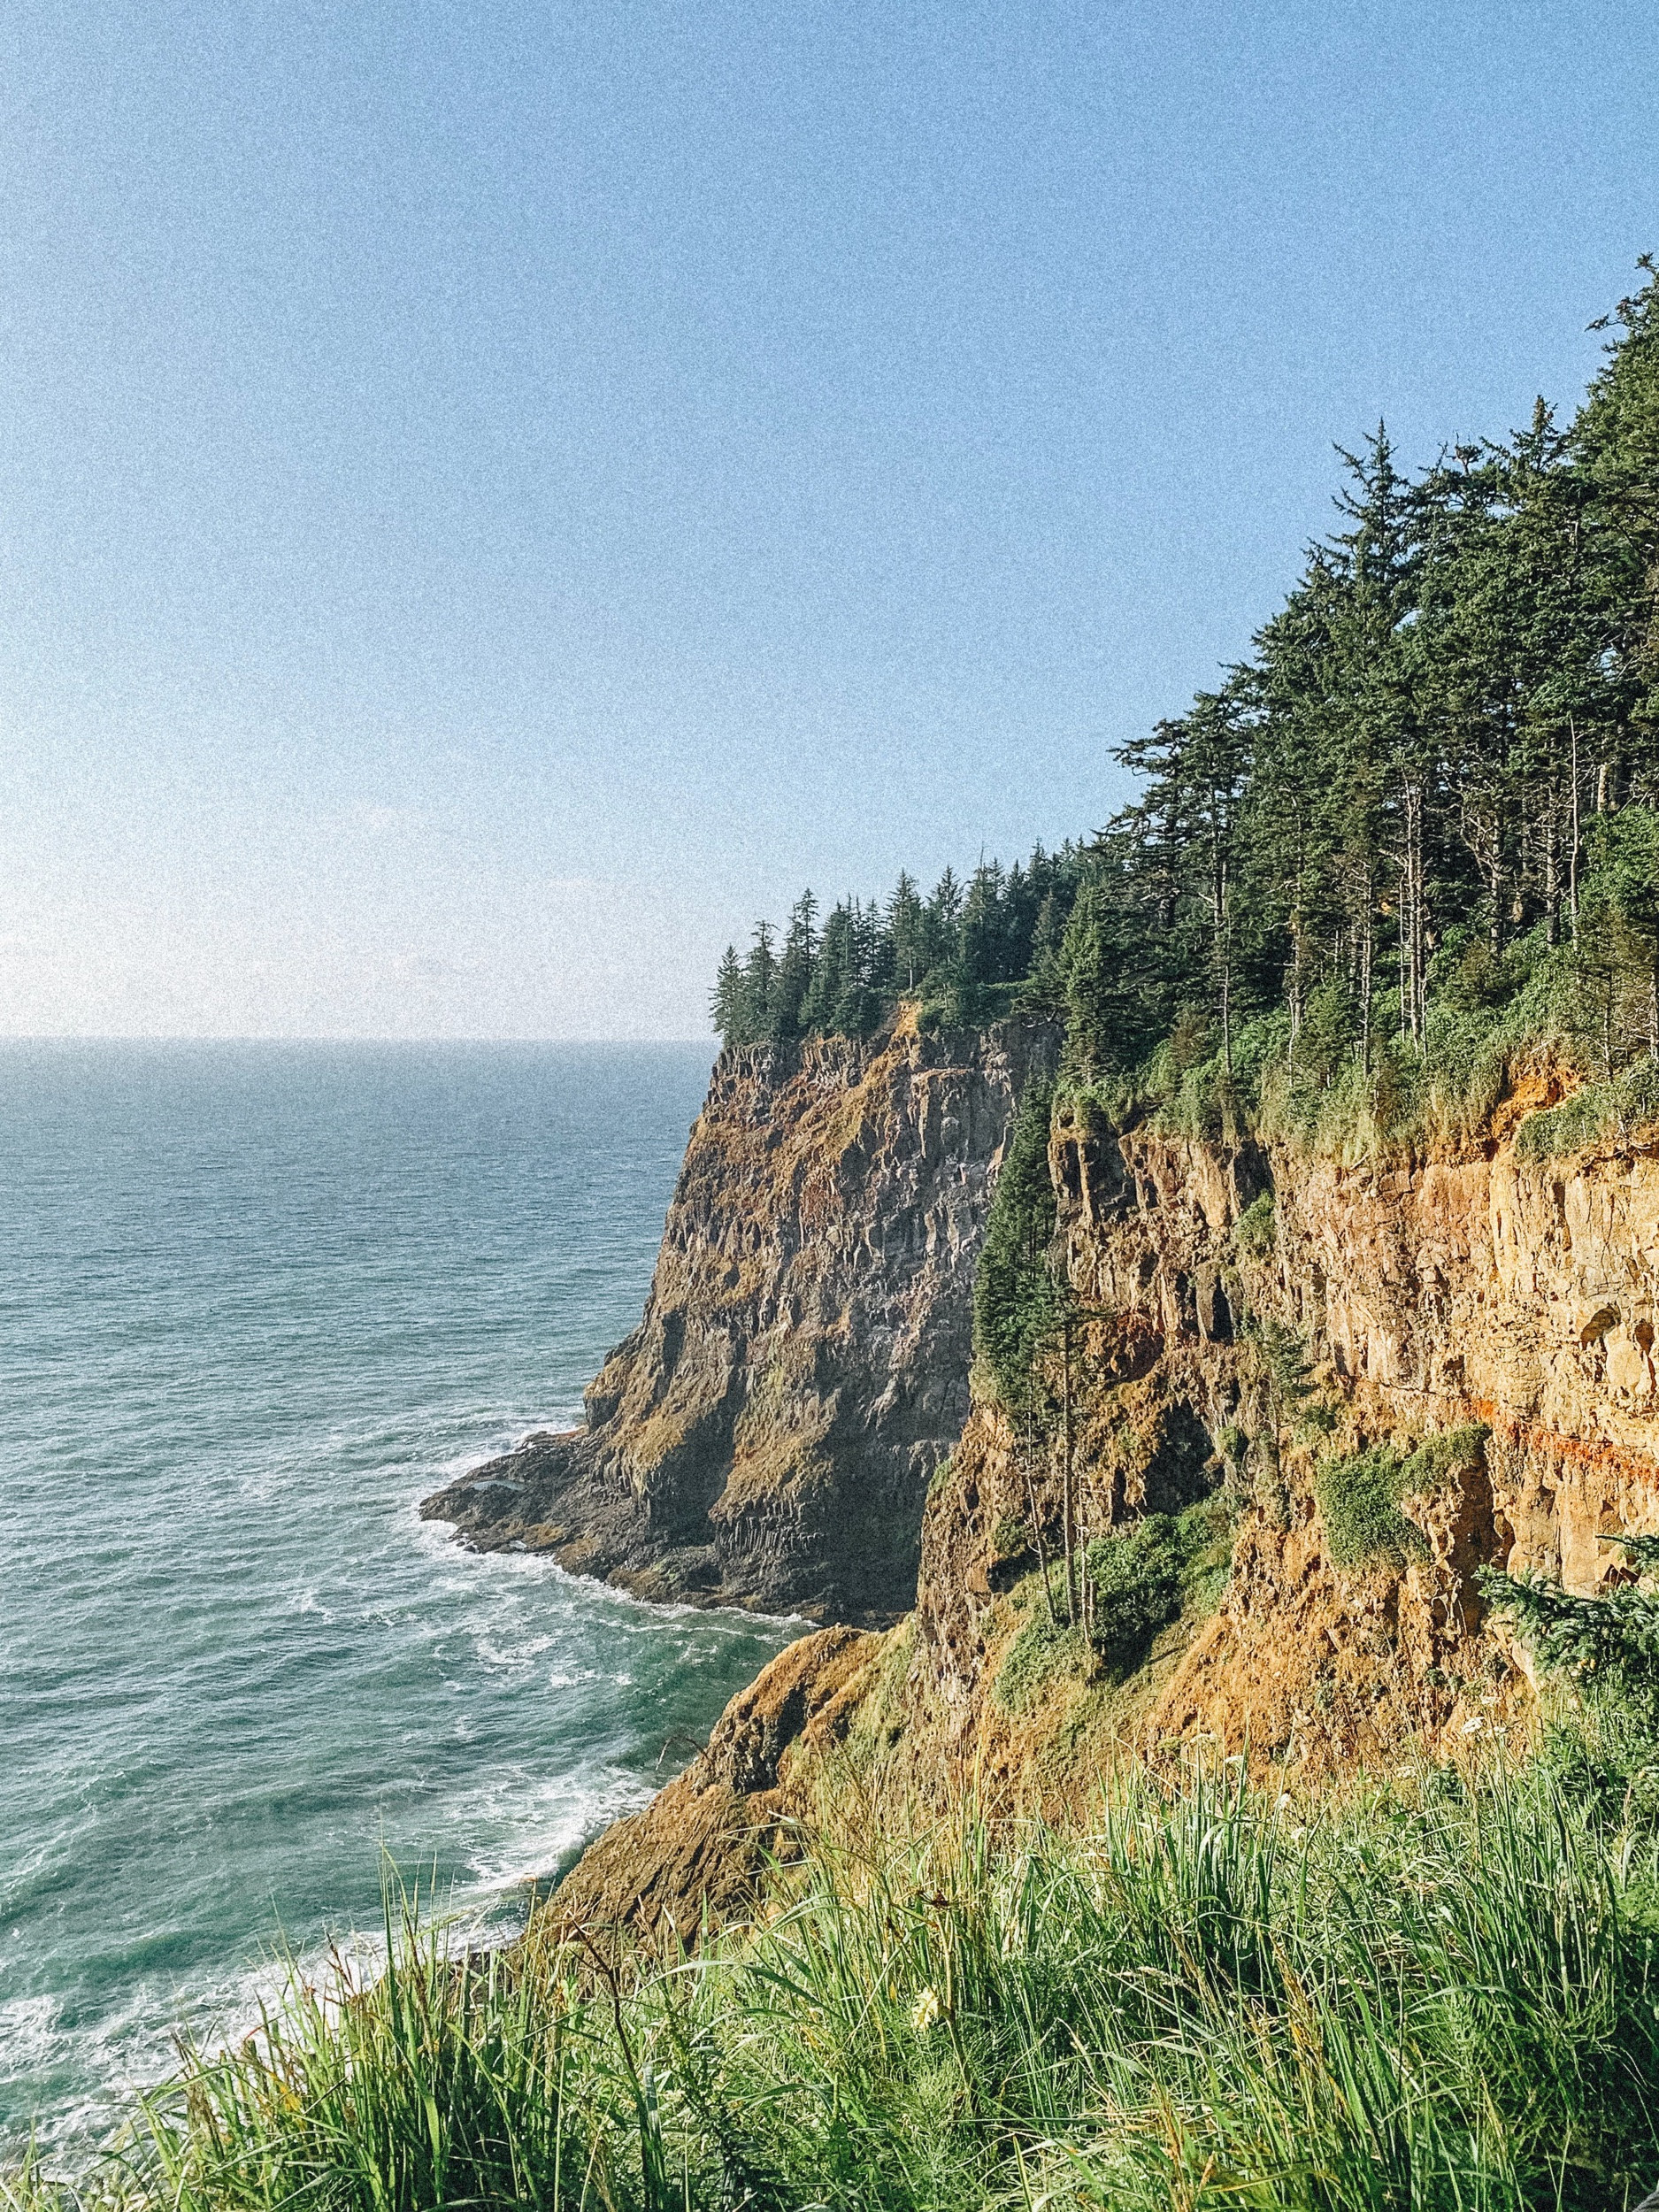 Pictured: Cape Meares